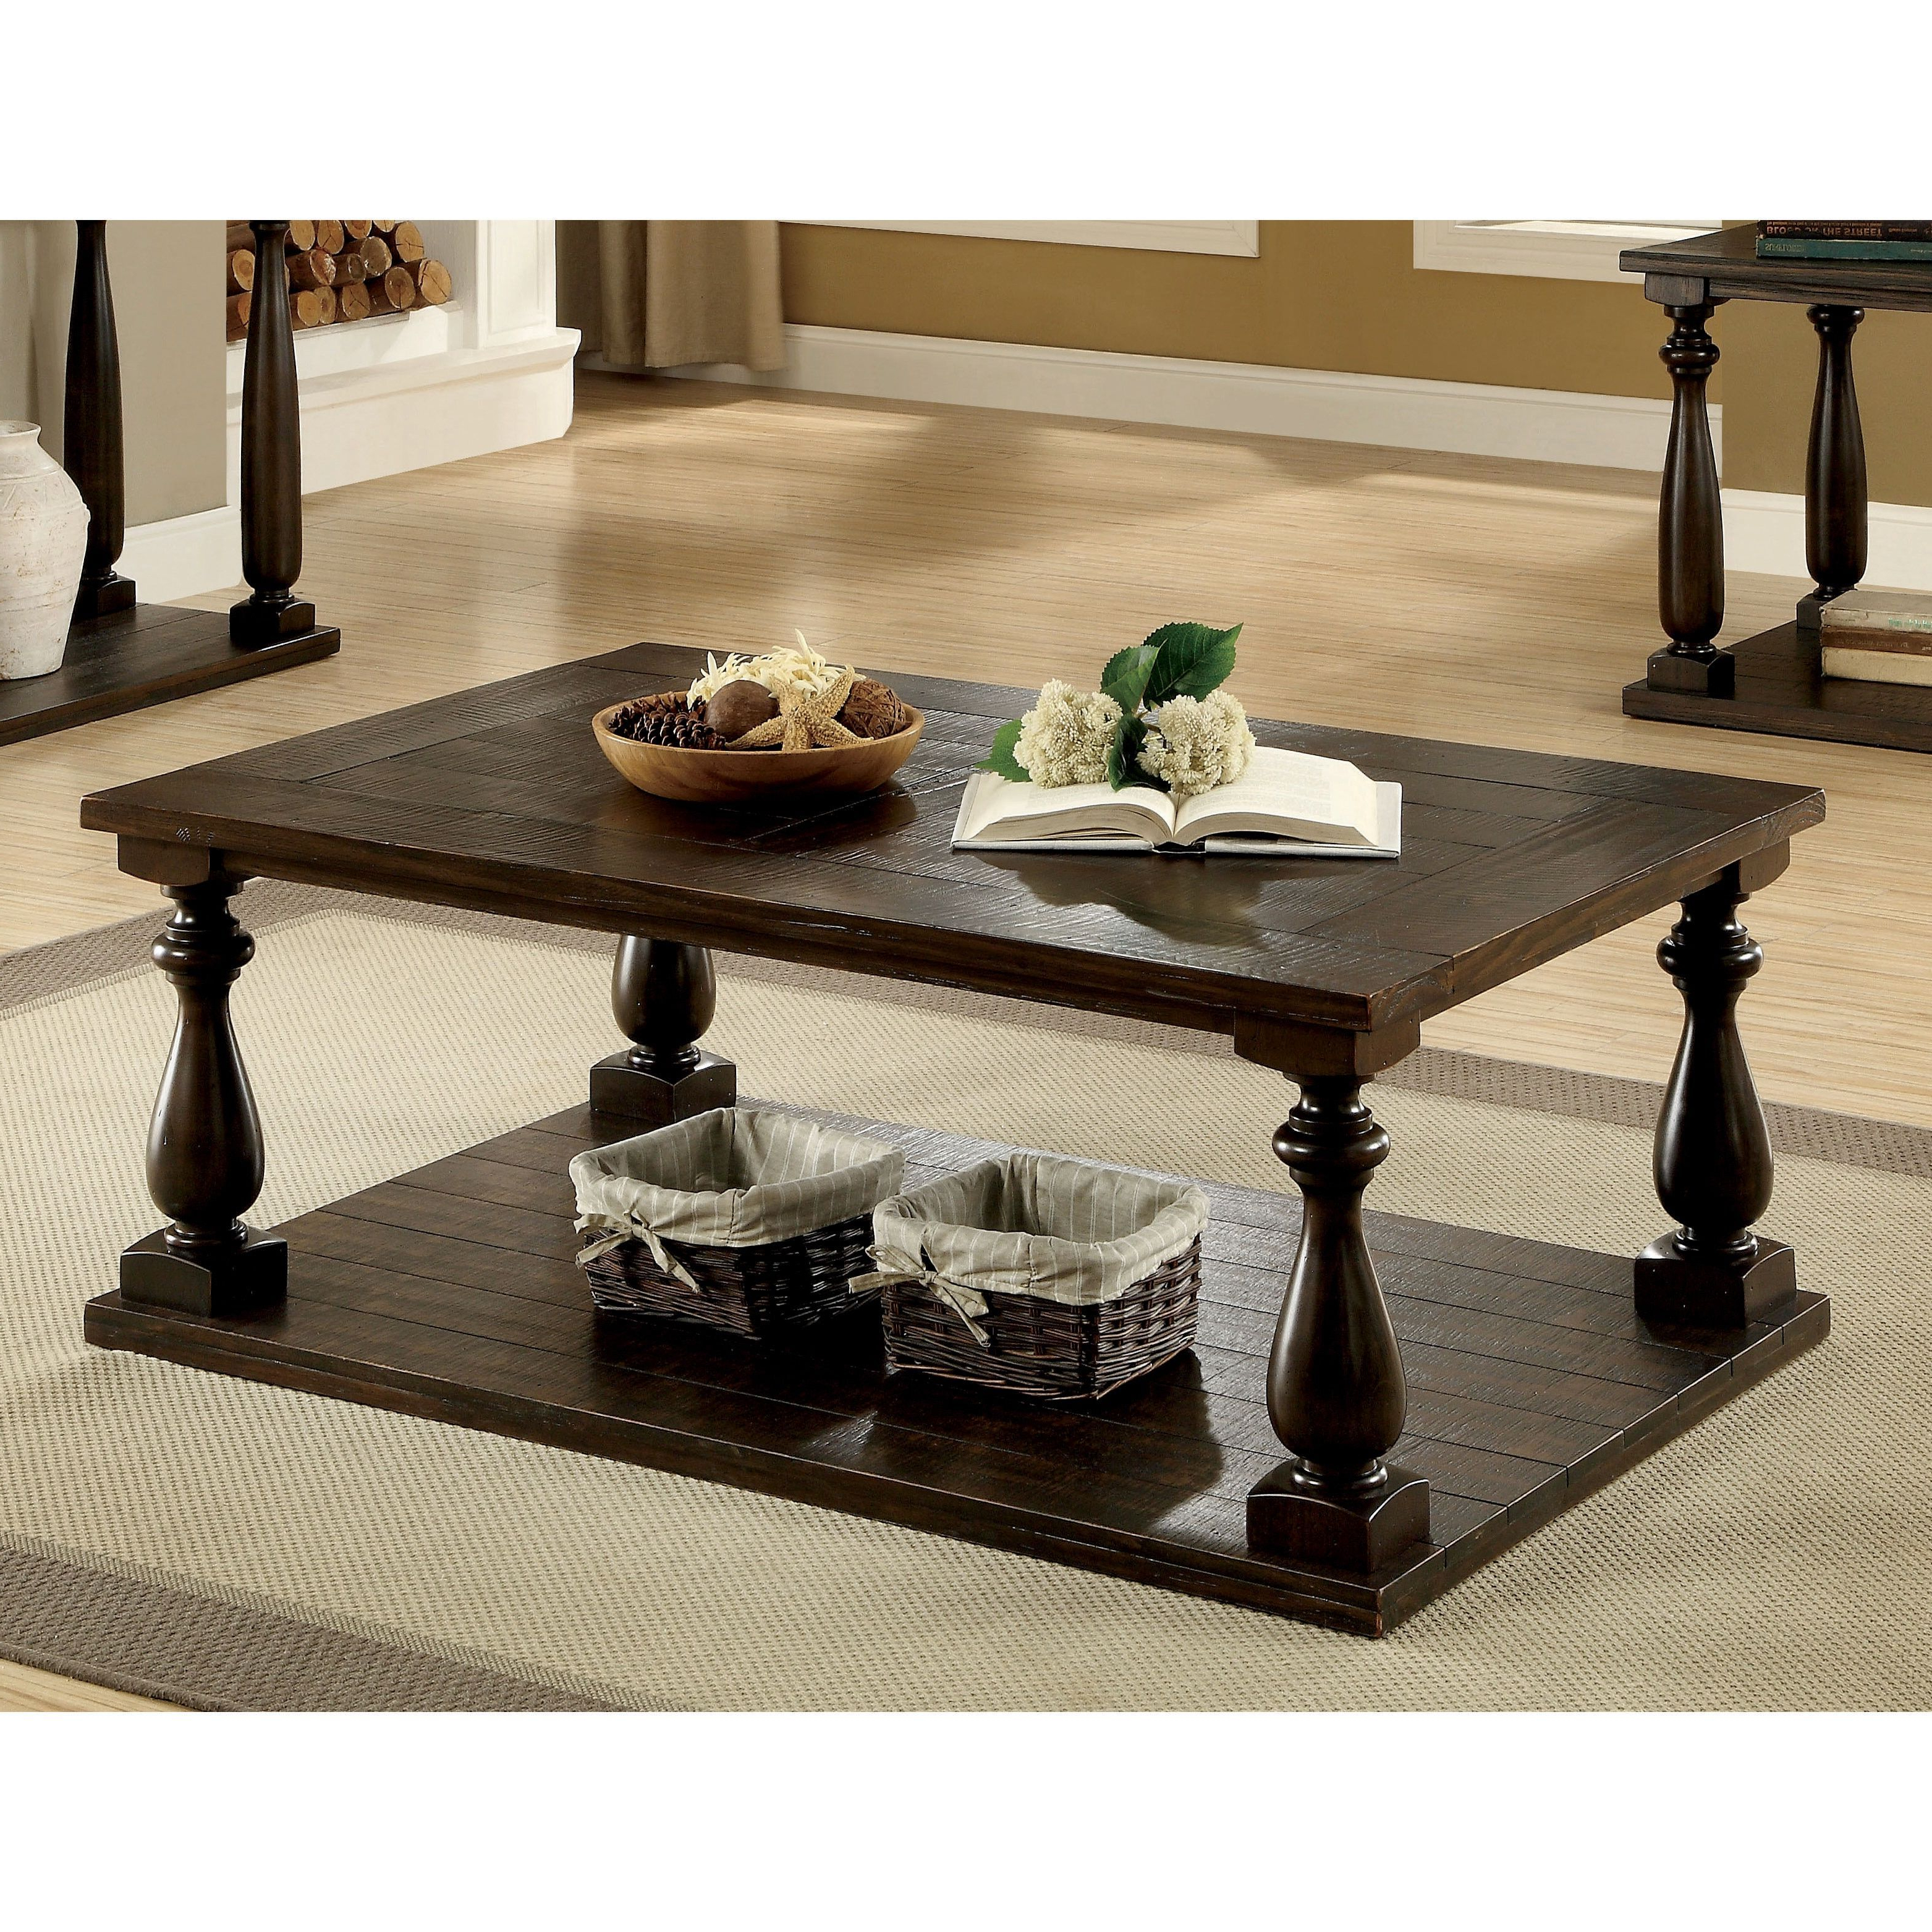 Furniture Of America Besser Plank Style Dark Walnut Open In Most Recently Released Jessa Rustic Country 54 Inch Coffee Tables (View 9 of 20)